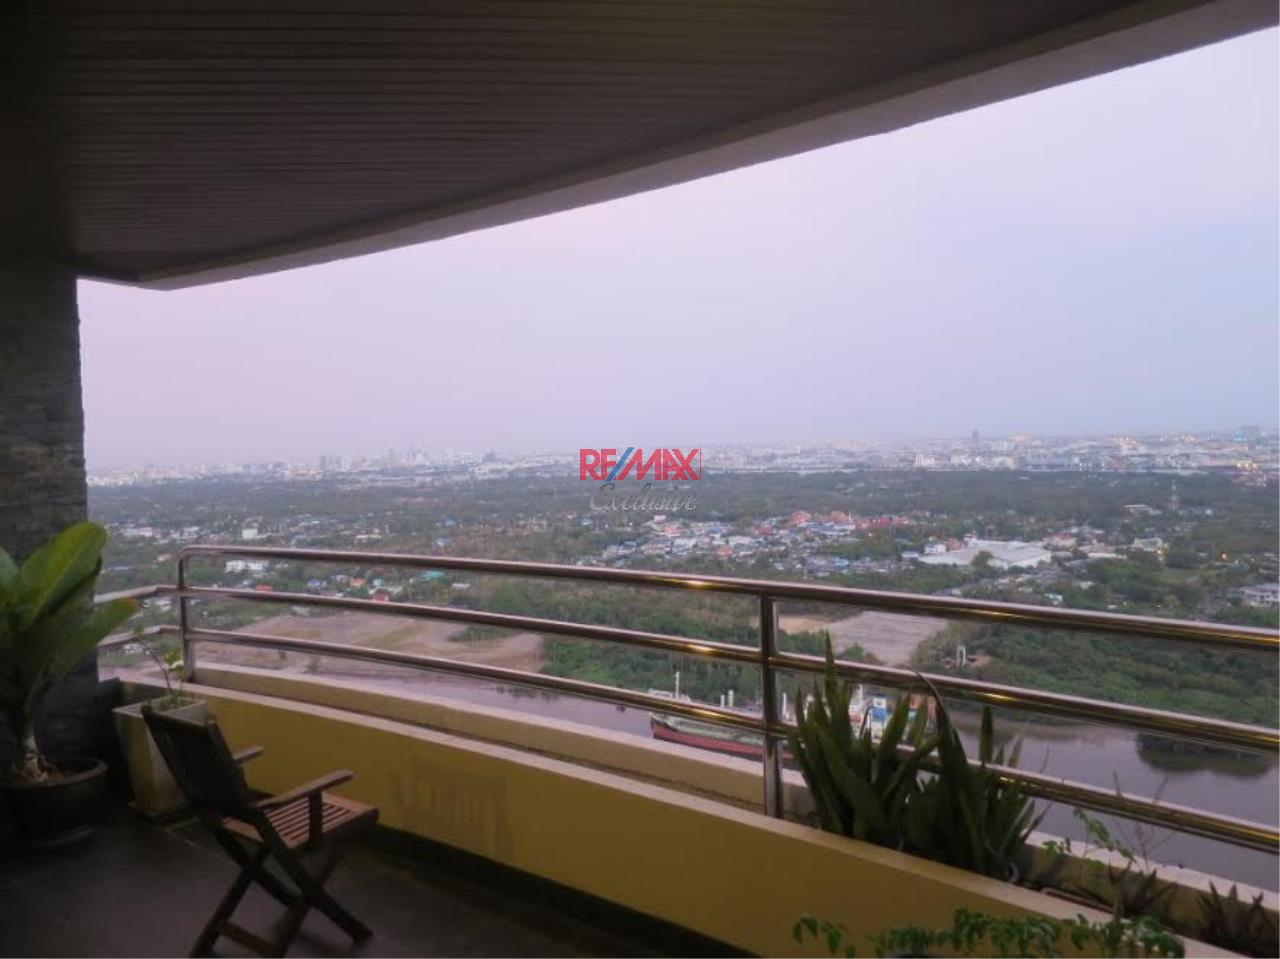 RE/MAX Exclusive Agency's Royal River Place Condo, 3 Bedrooms, 3 Bathrooms, Only For Sale 20,000,000 THB 15